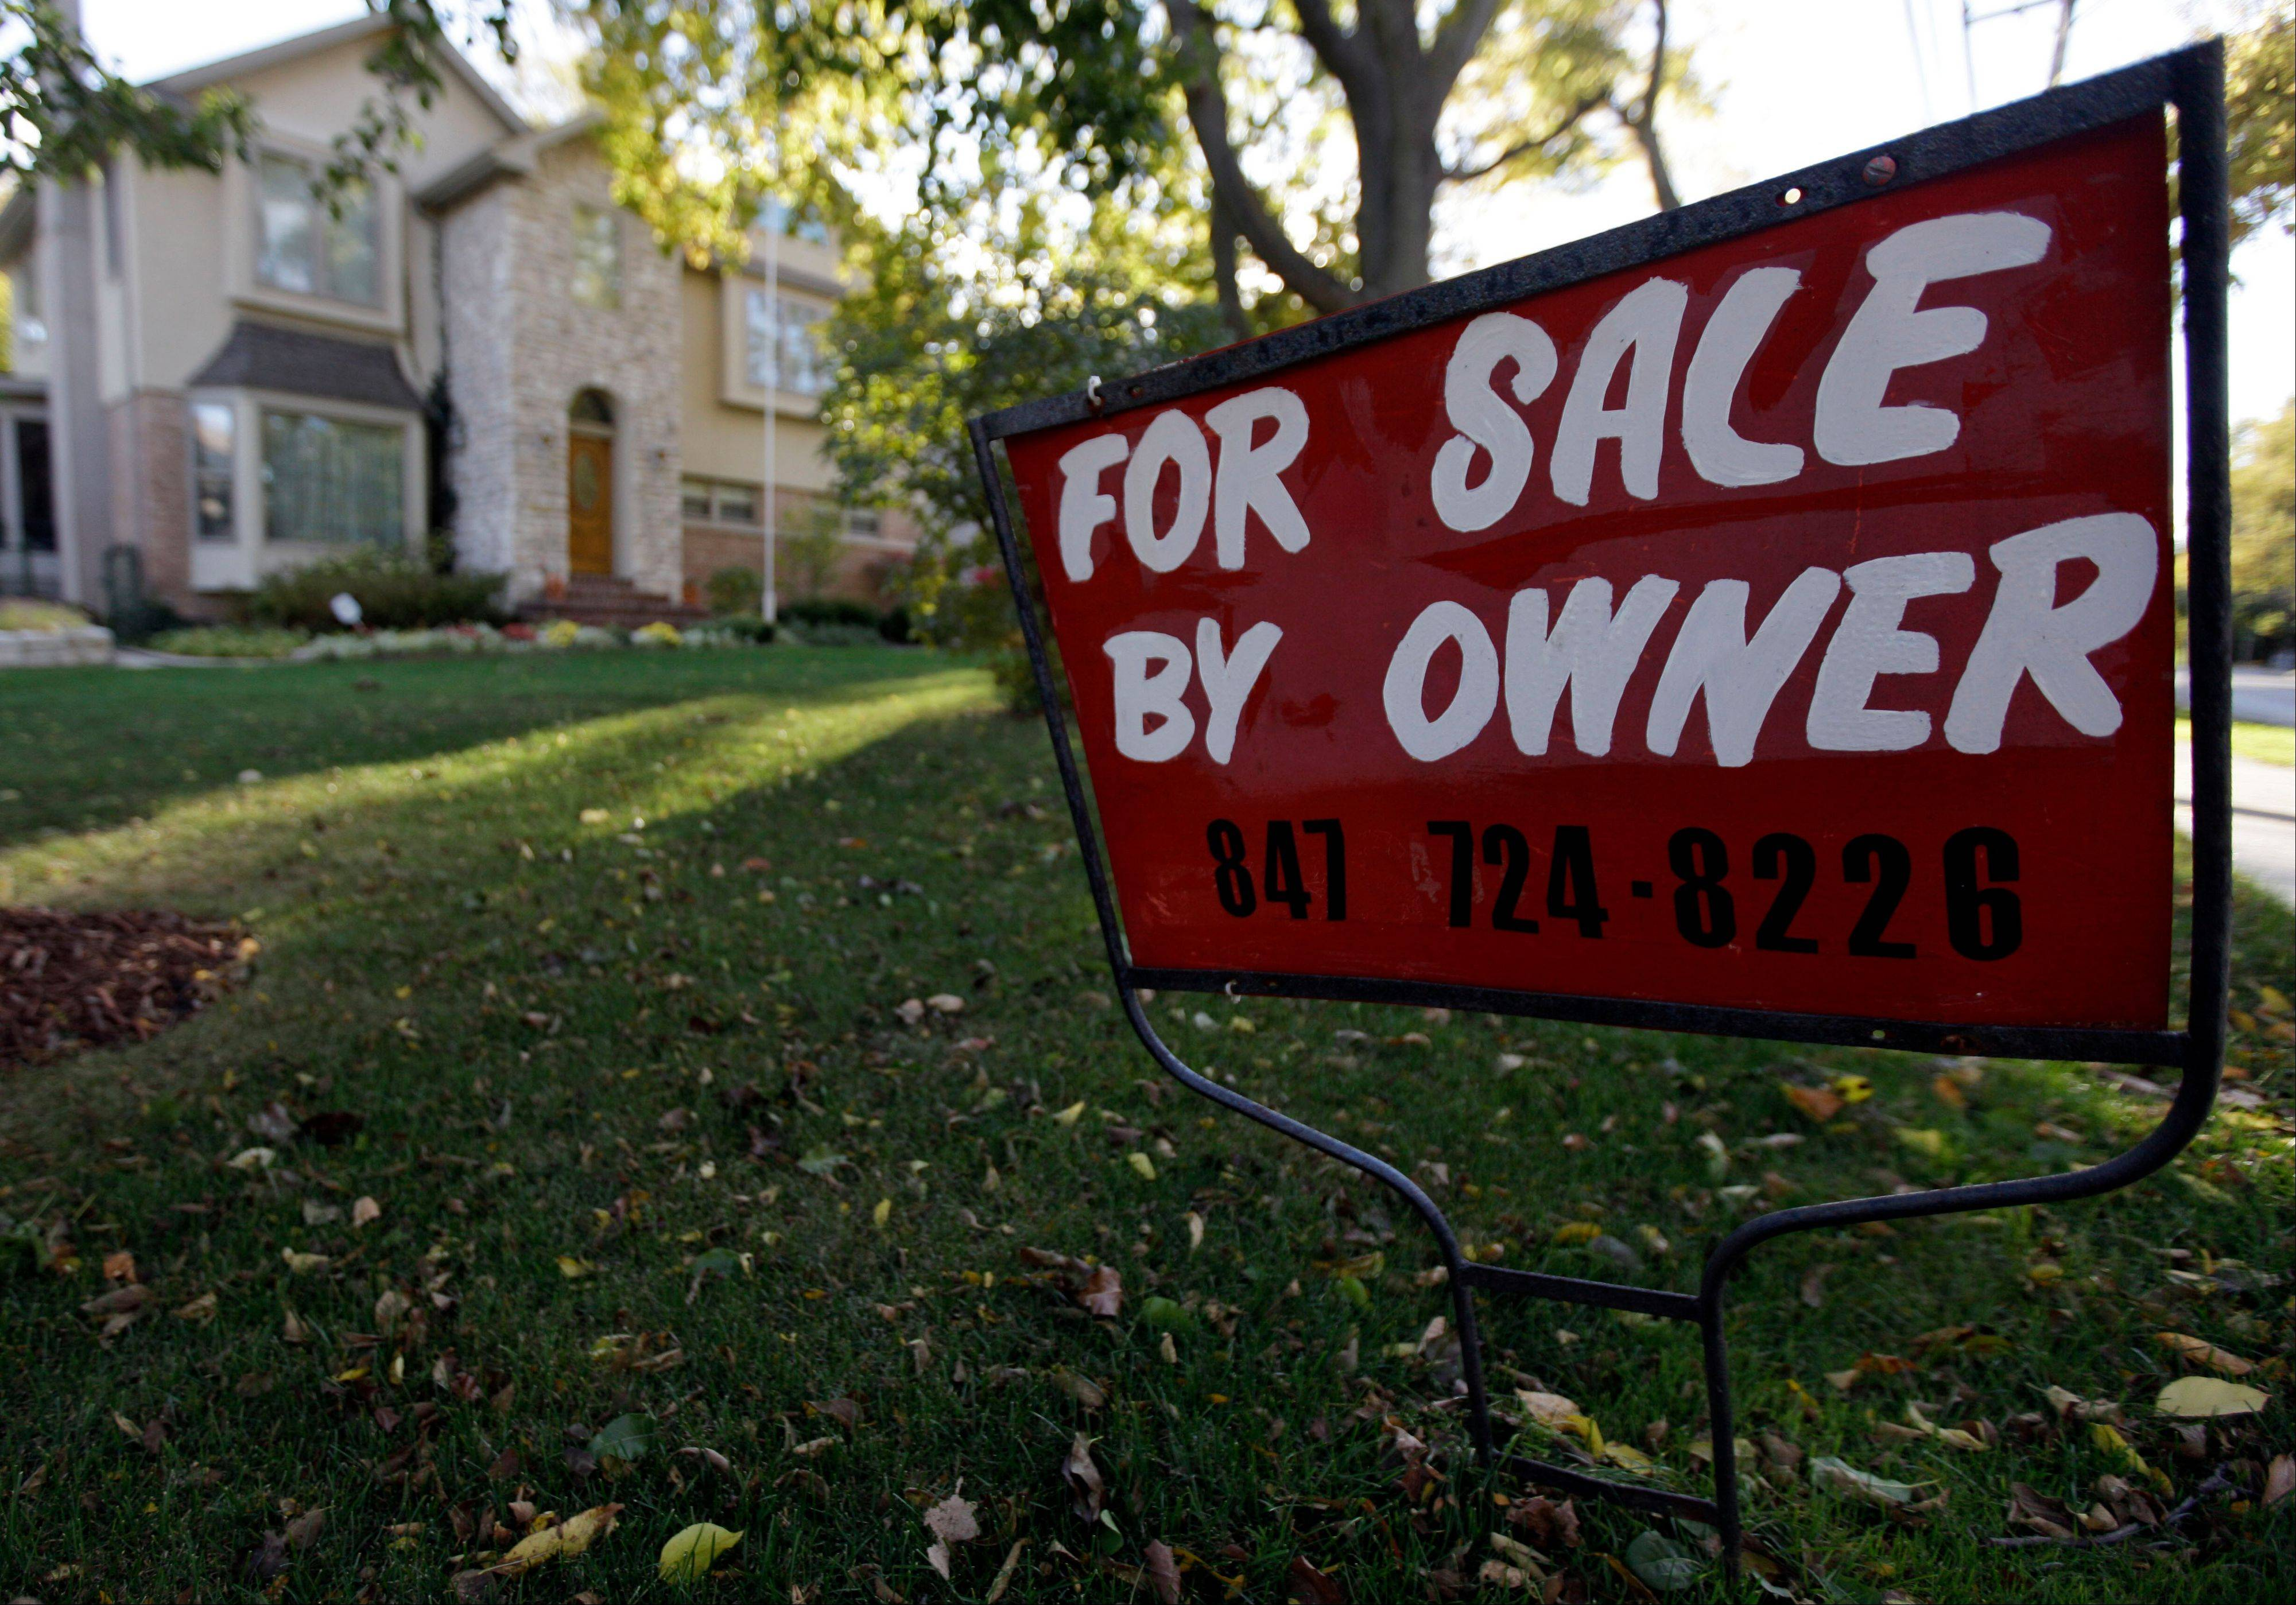 A measure of U.S. home prices rose 6.3 percent in October compared with a year ago, the largest yearly gain since July 2006. The jump adds to signs of a comeback in the once-battered housing market.